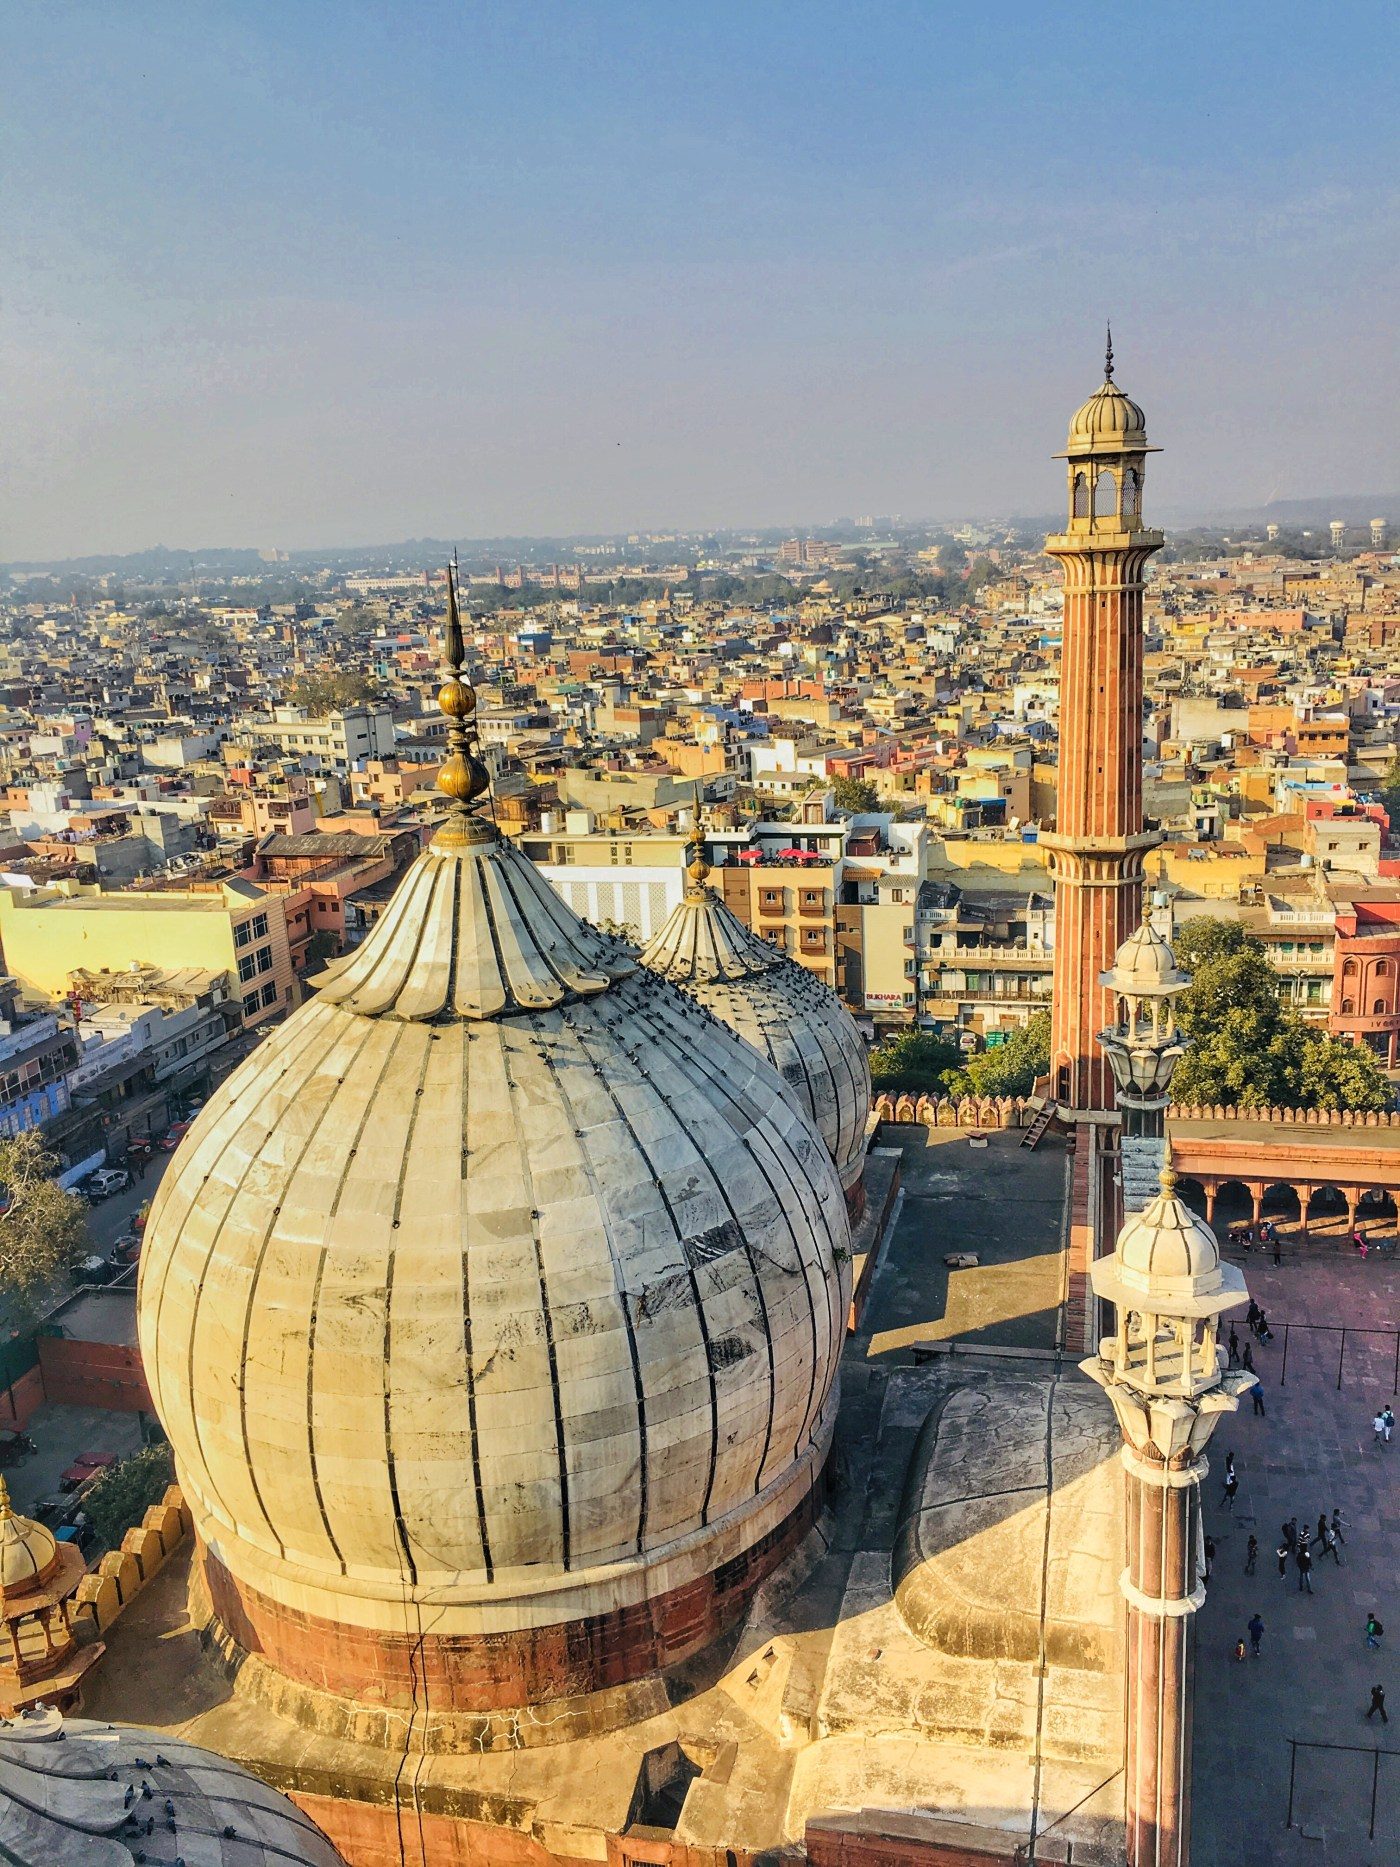 views of city including the tomb of Mosque from the Minaret in Jama Masjid    The largest mosque in India